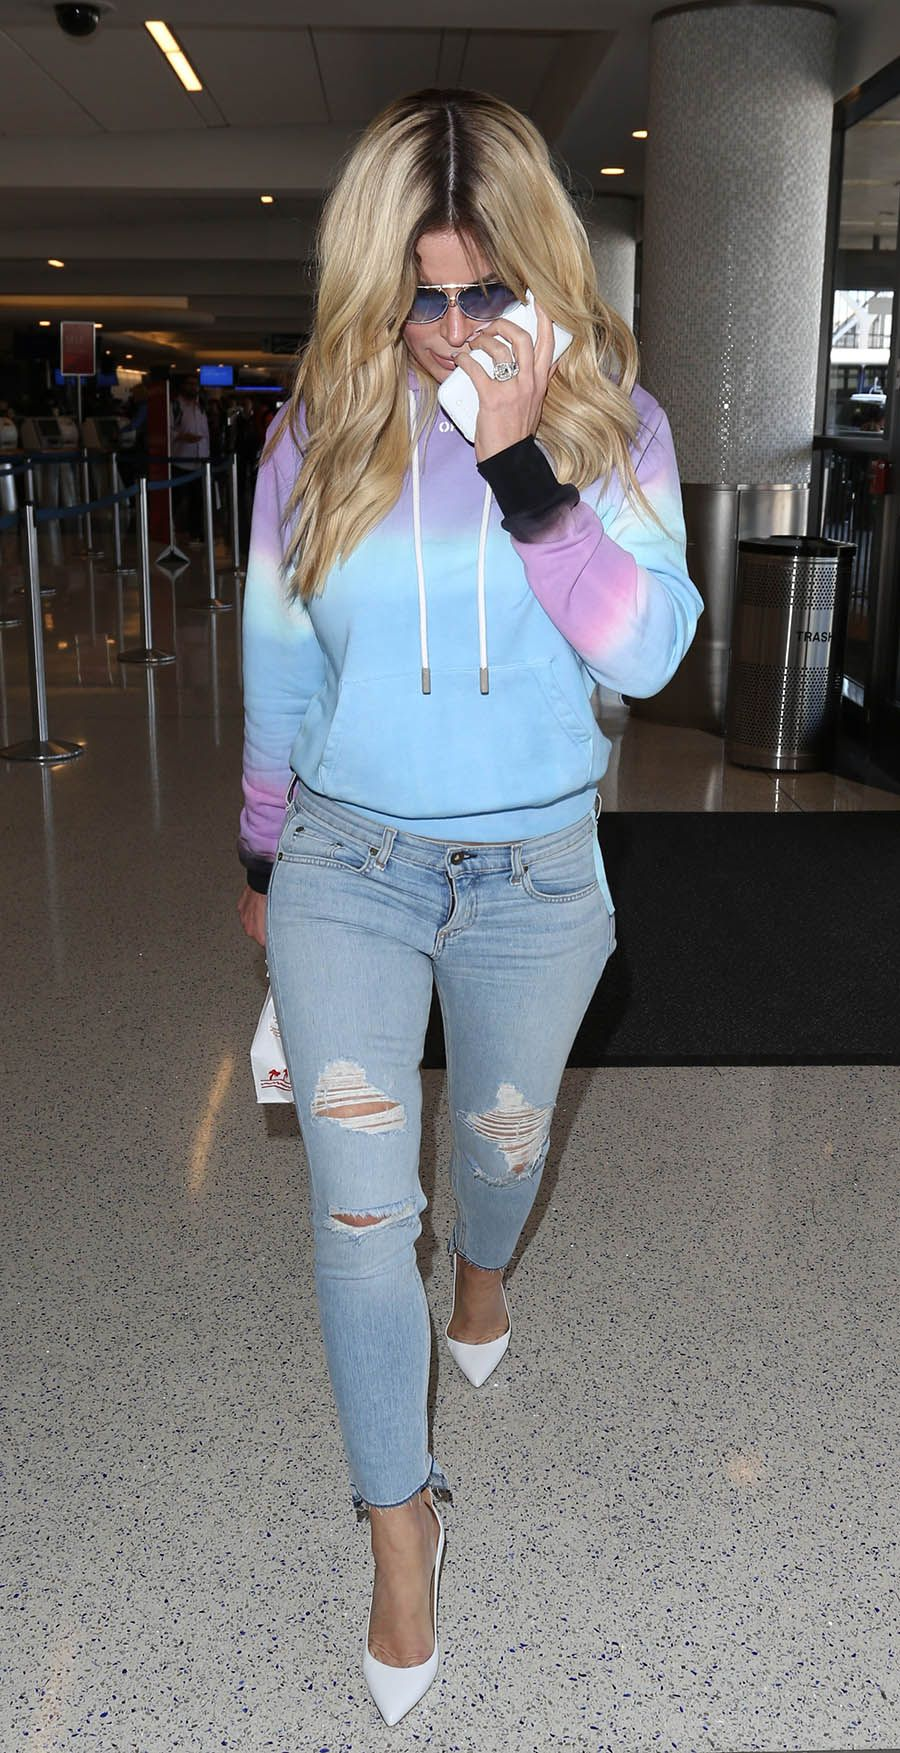 1d1b95aedb0 Kim Zolciak departs from the airport with her husband Kroy Biermann  Featuring  Kim Zolciak Where  Los Angeles